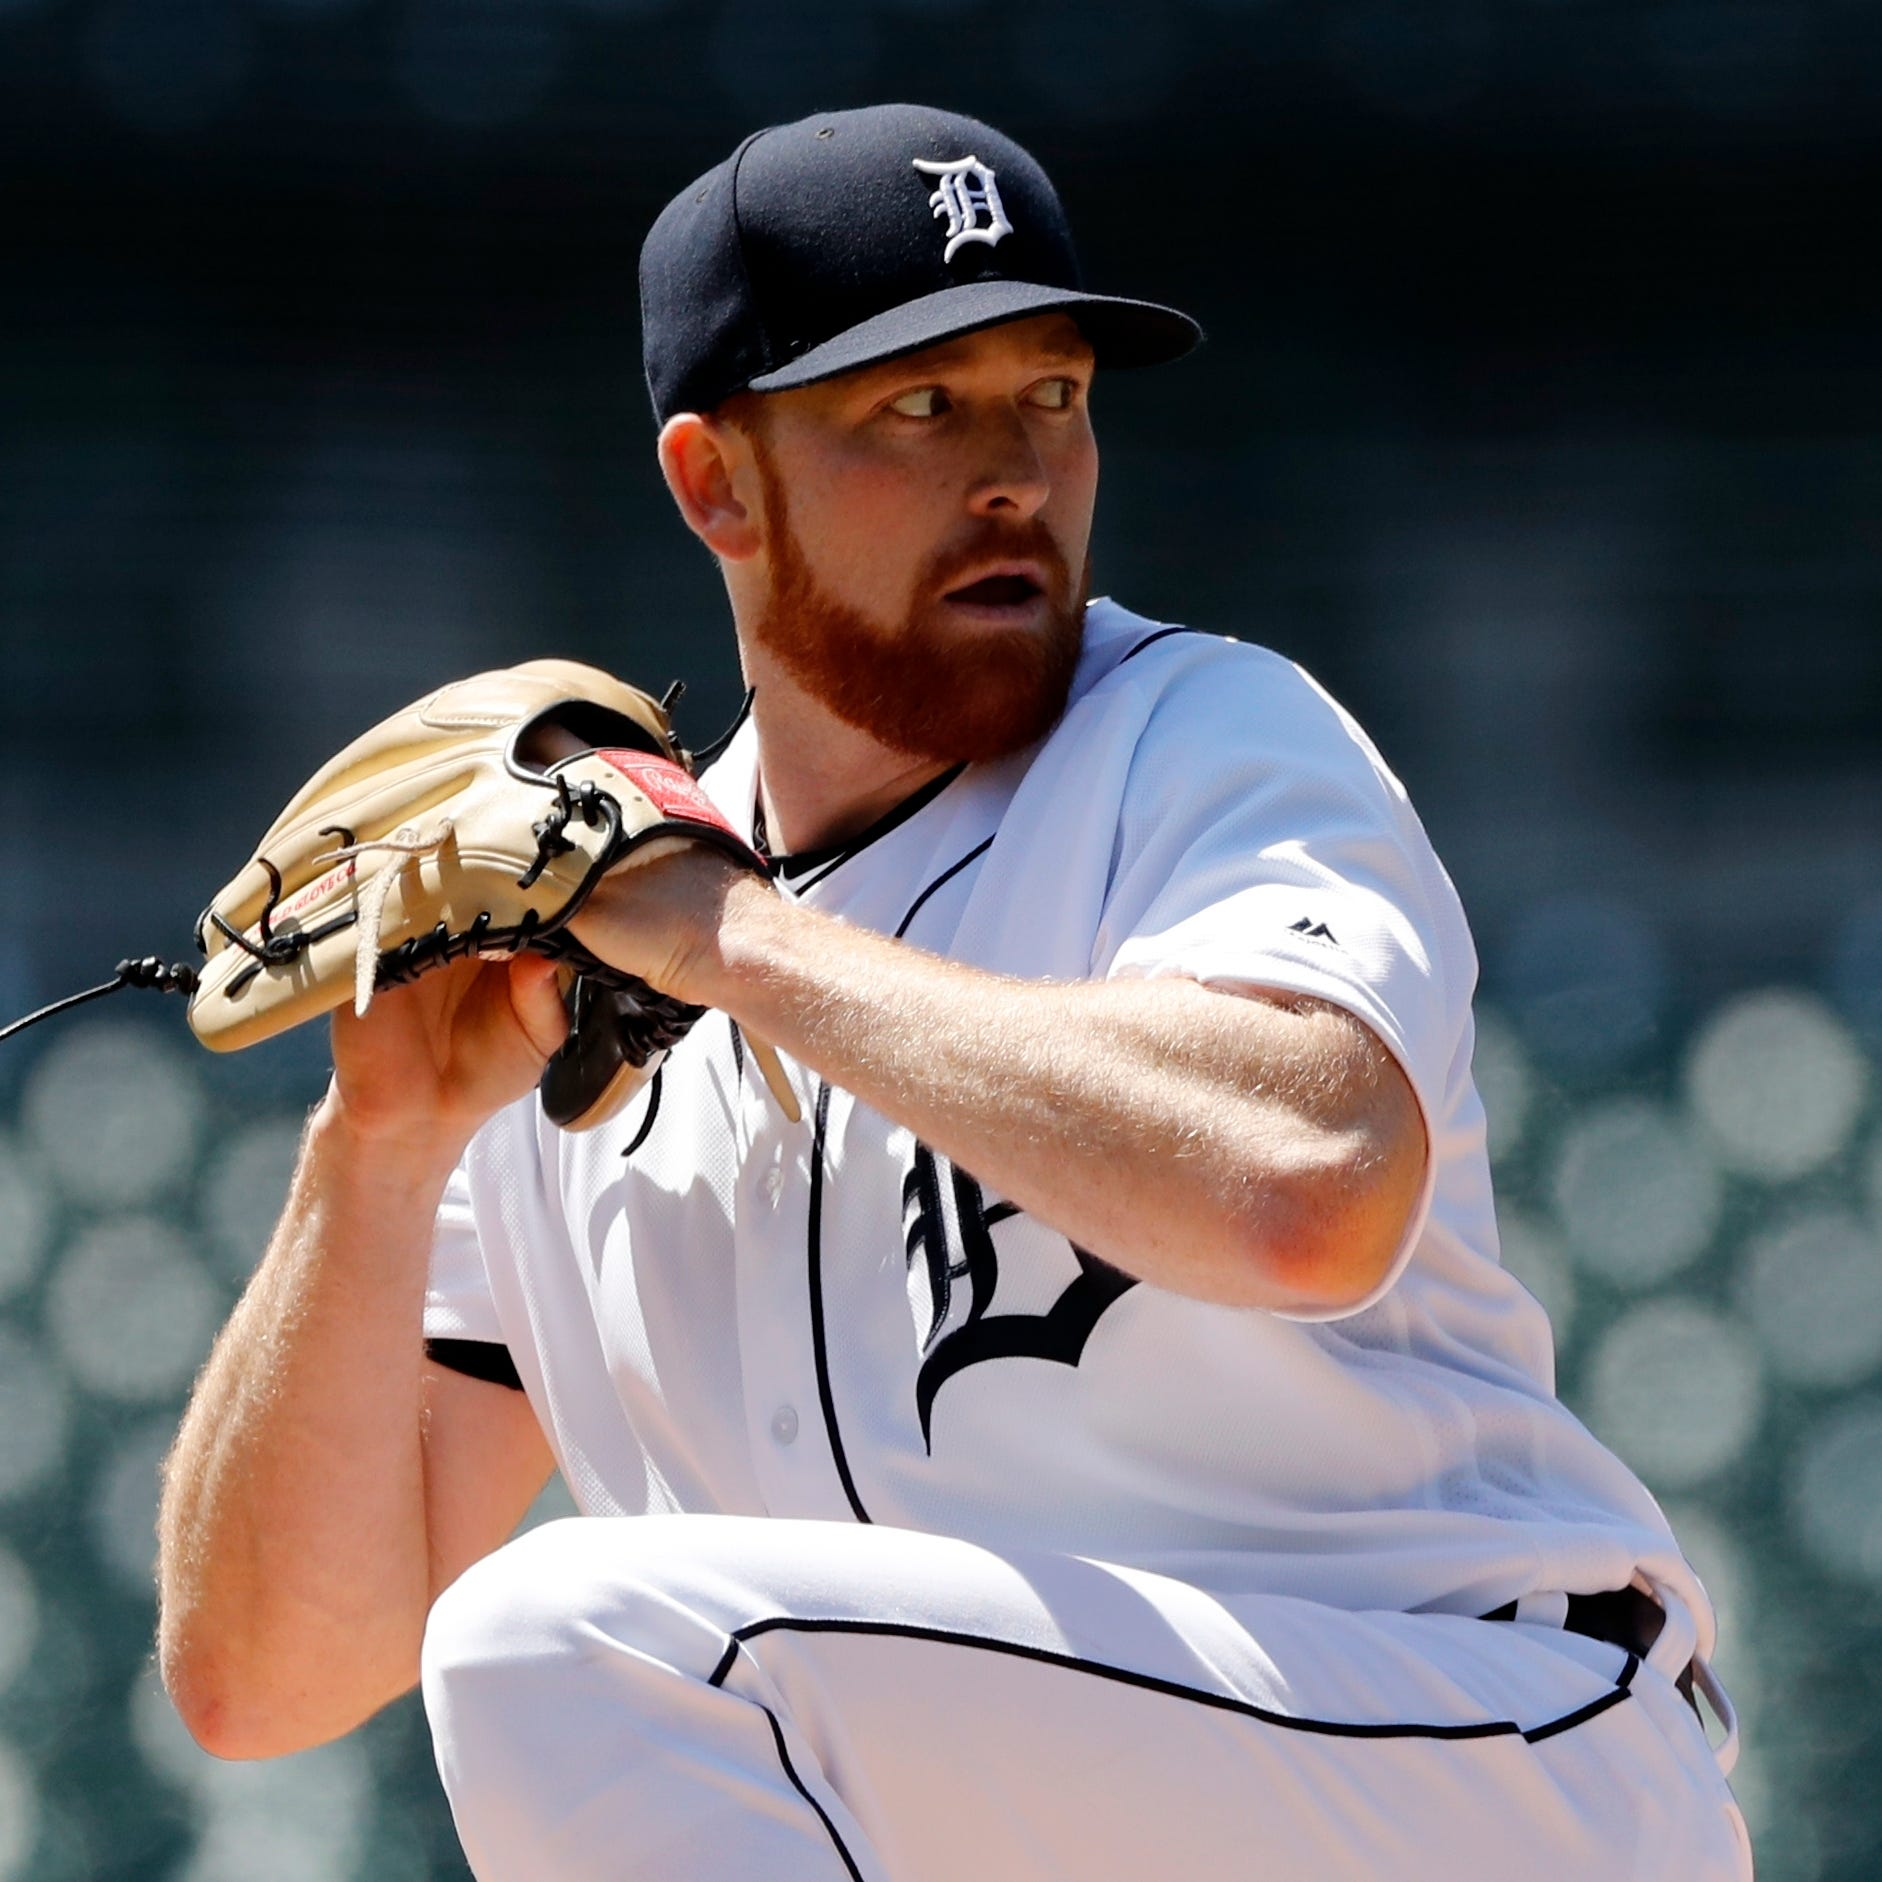 Detroit Tigers vs. Minnesota Twins doubleheader: Live updates